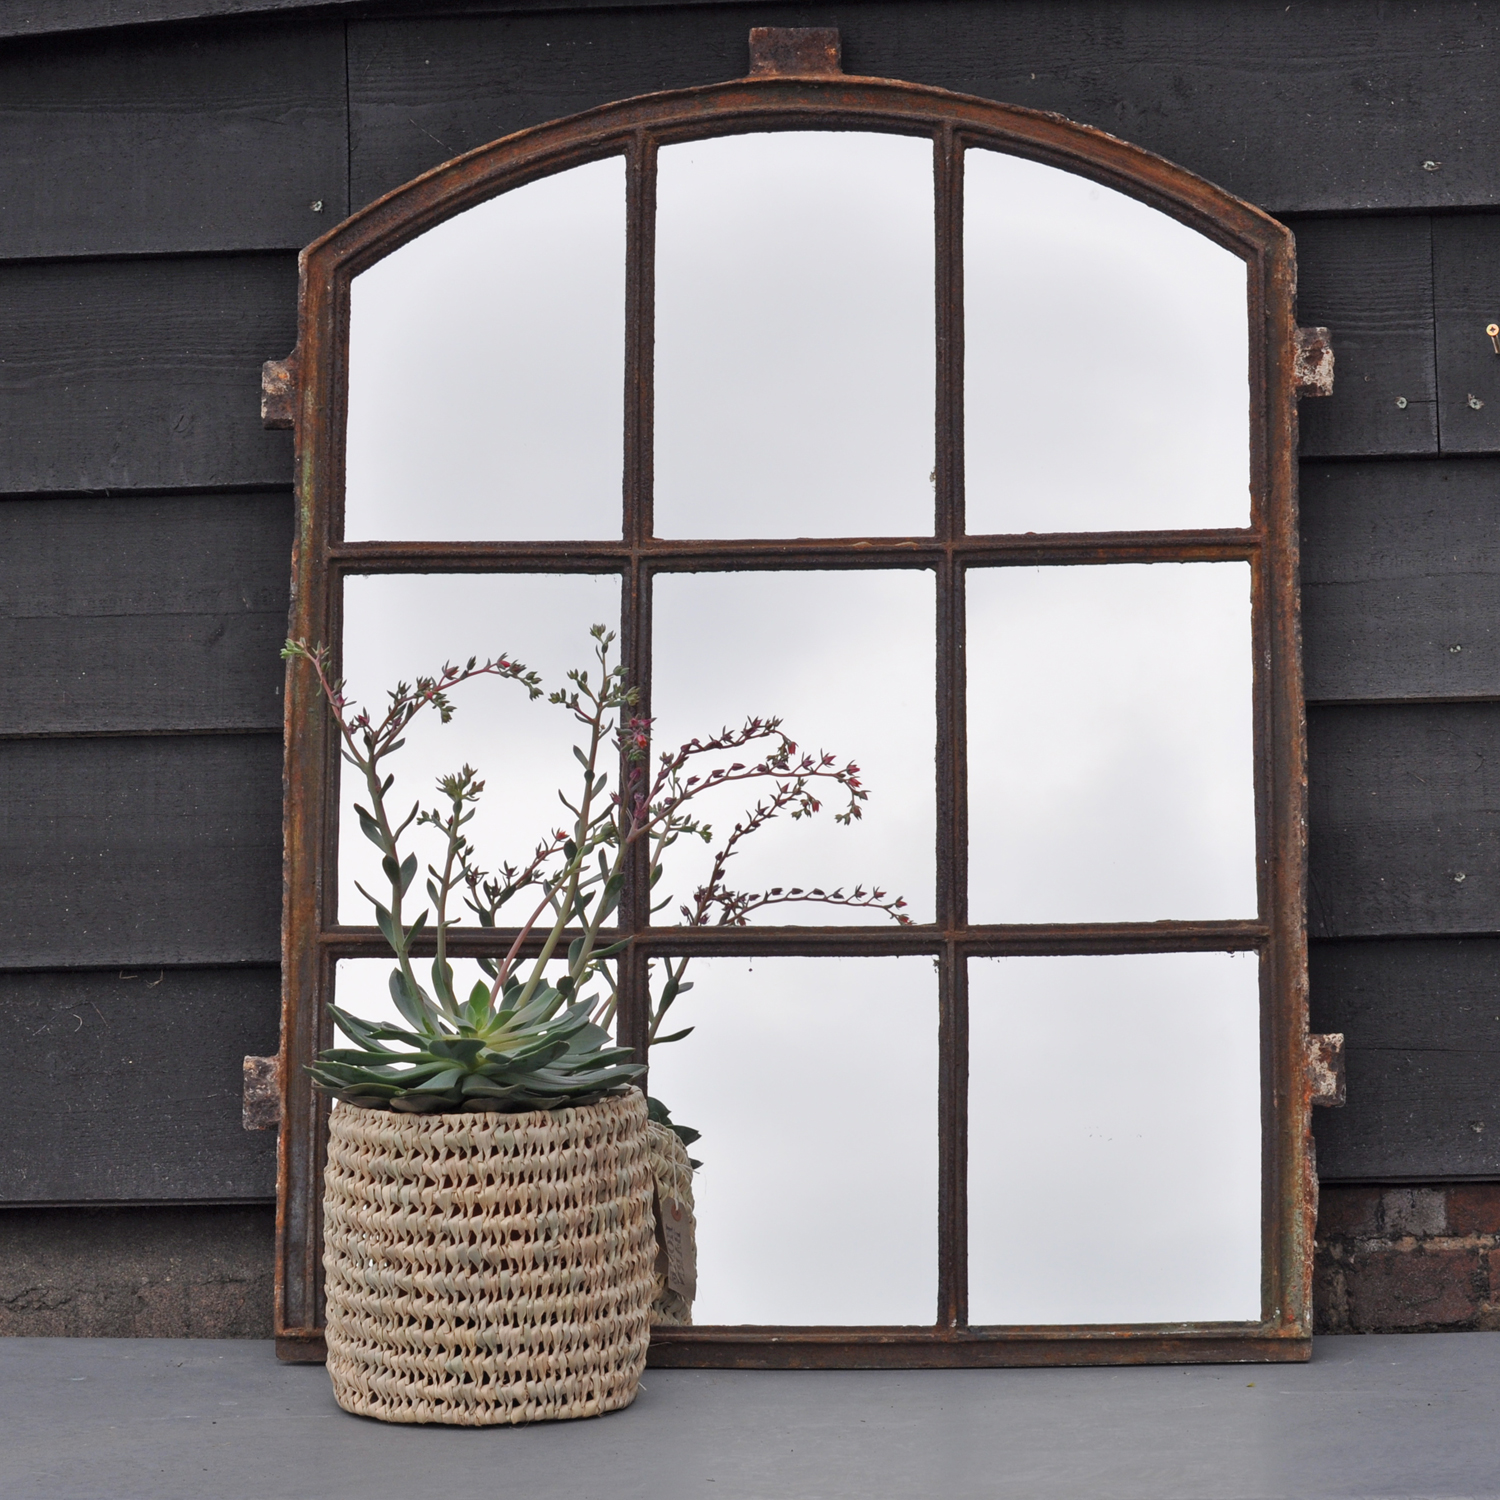 Vintage industrial window pane warehouse mirror home for Industrial windows for homes